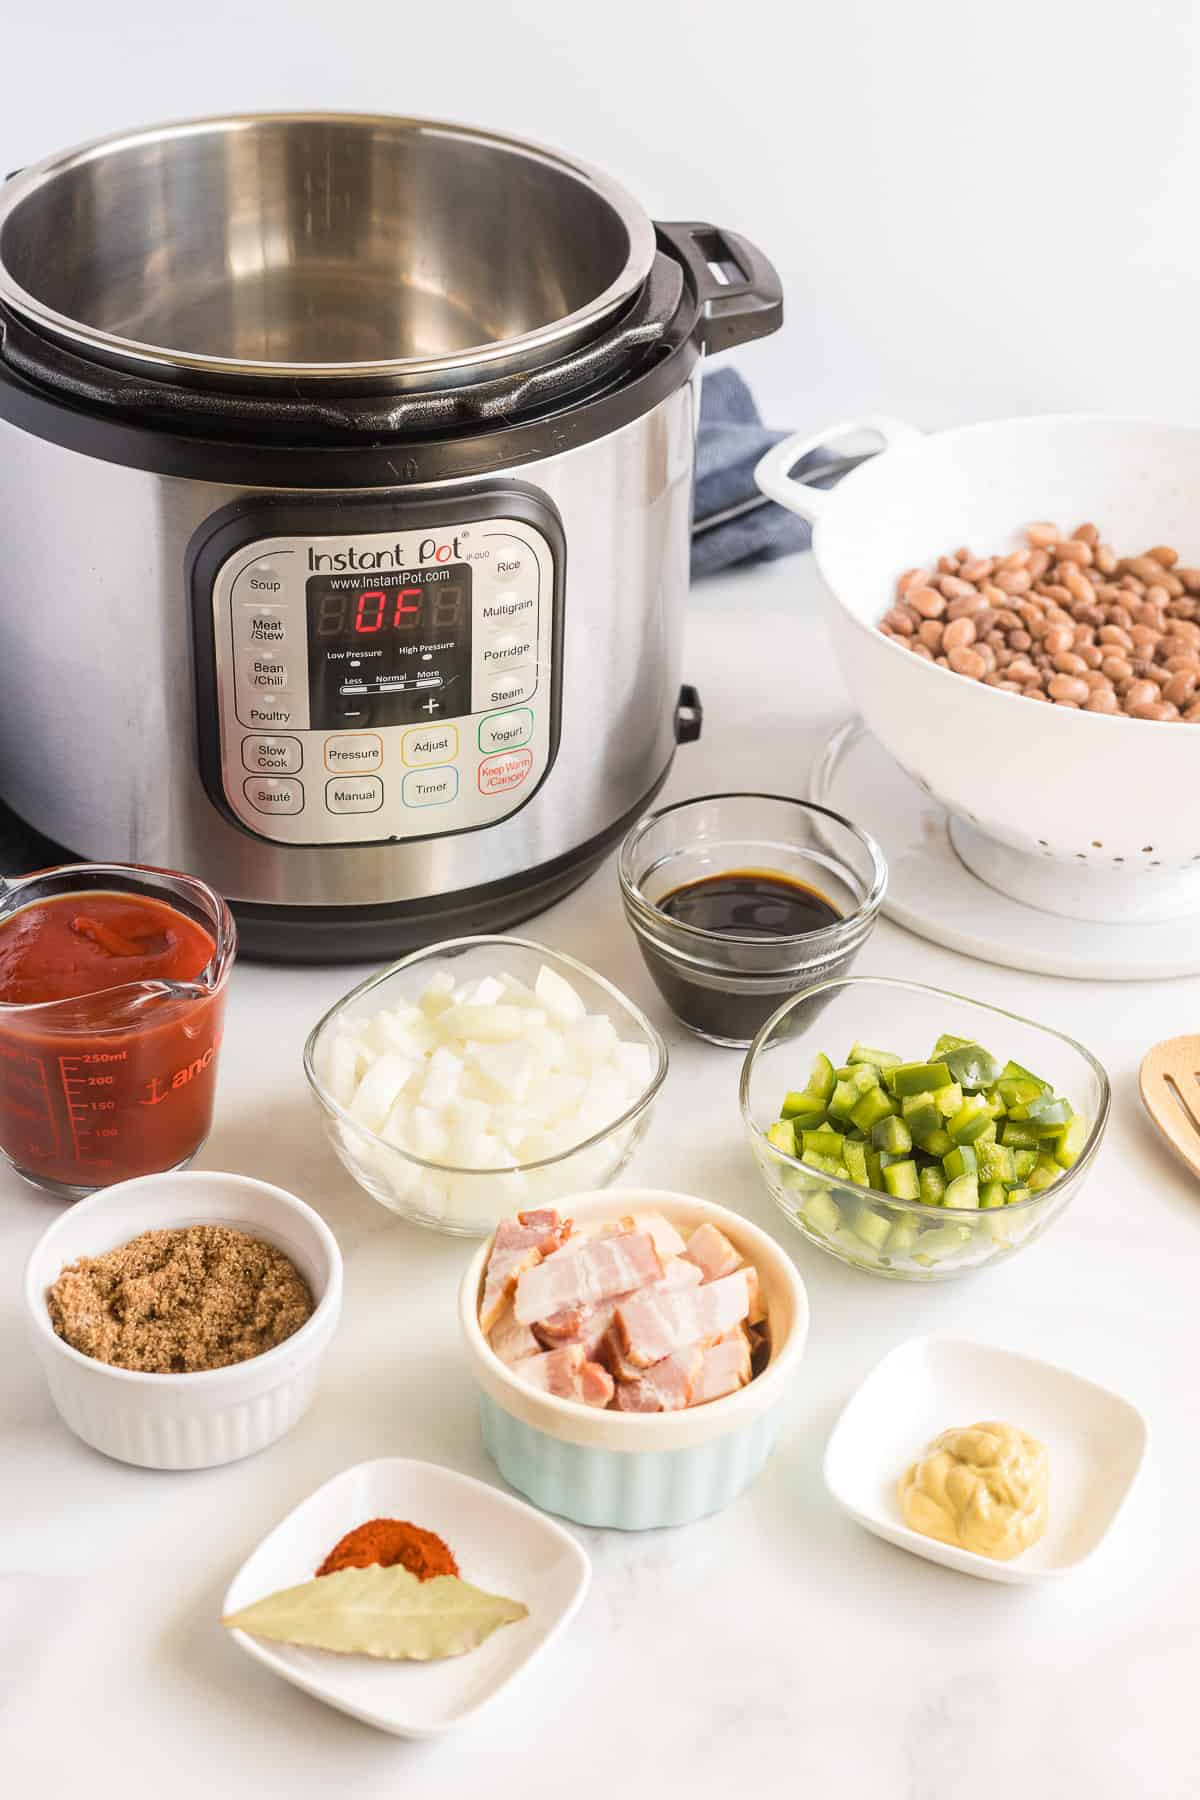 The baked bean ingredients and an Instant Pot on a white surface.